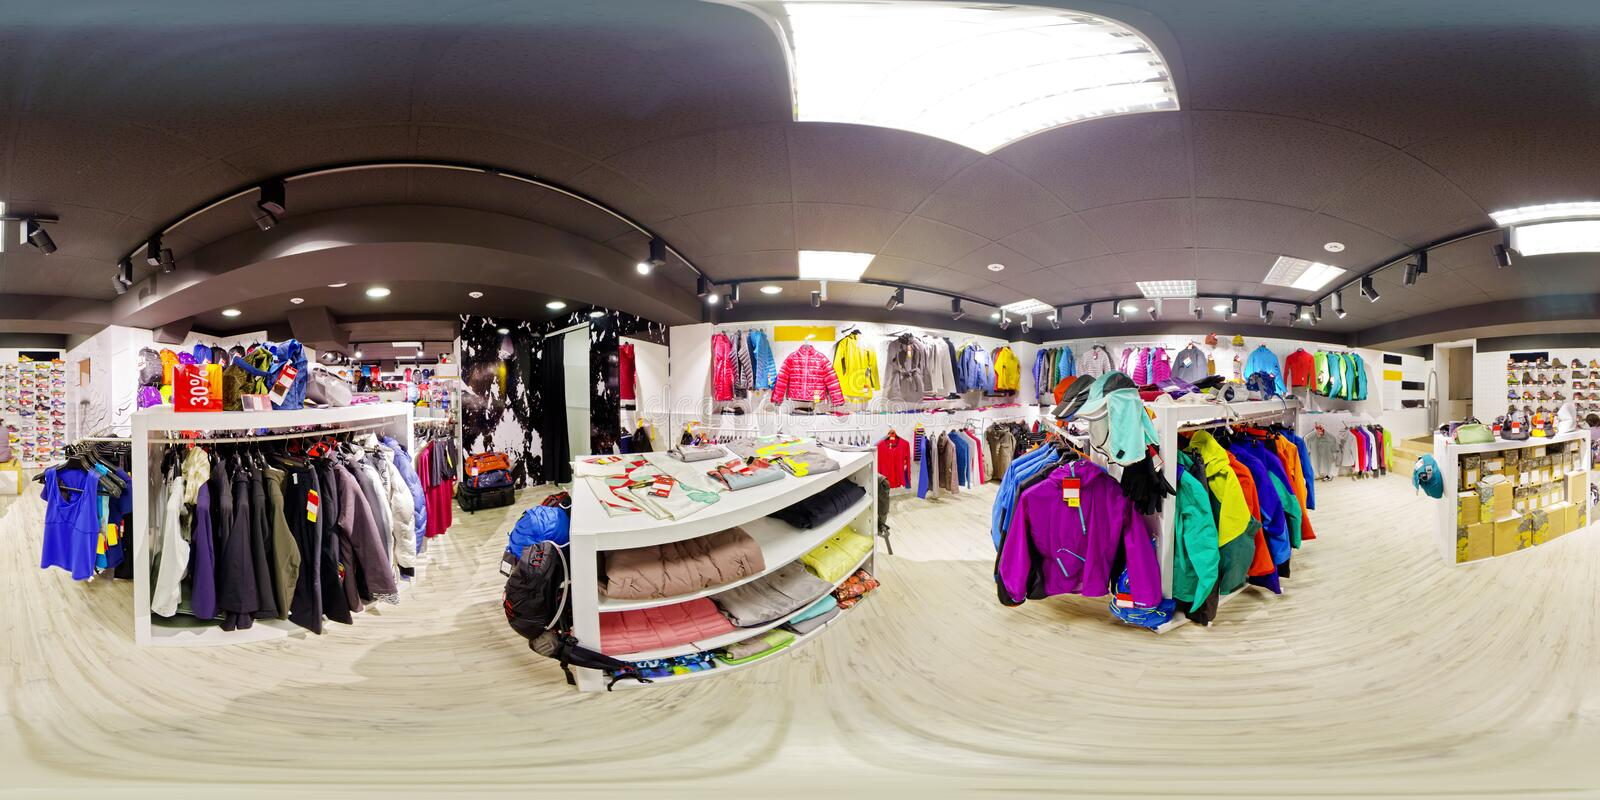 Spherical panorama of the interior of sportswear store 360 to 180 degrees royalty free stock photos